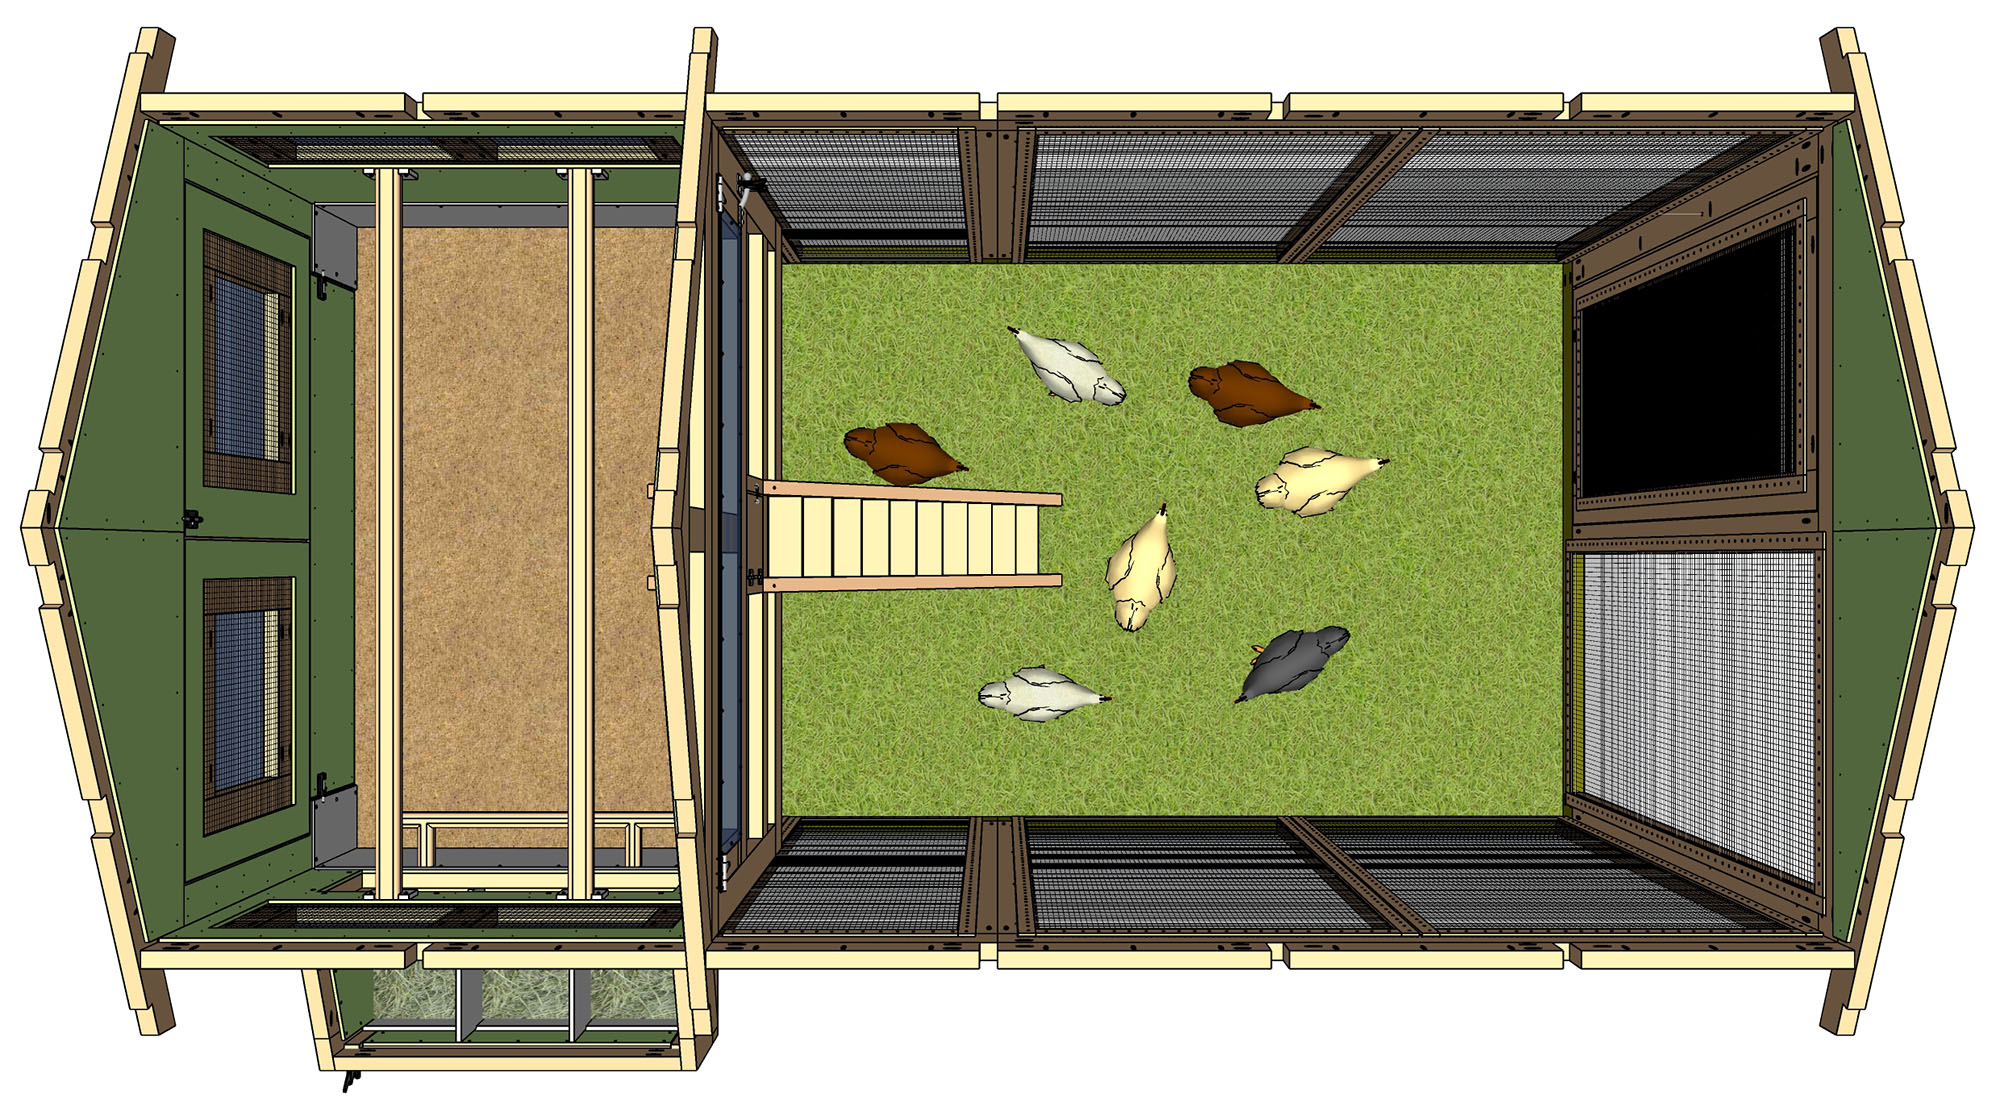 Overhead view shows 7 chickens in the run of a 6'x12' American Coop